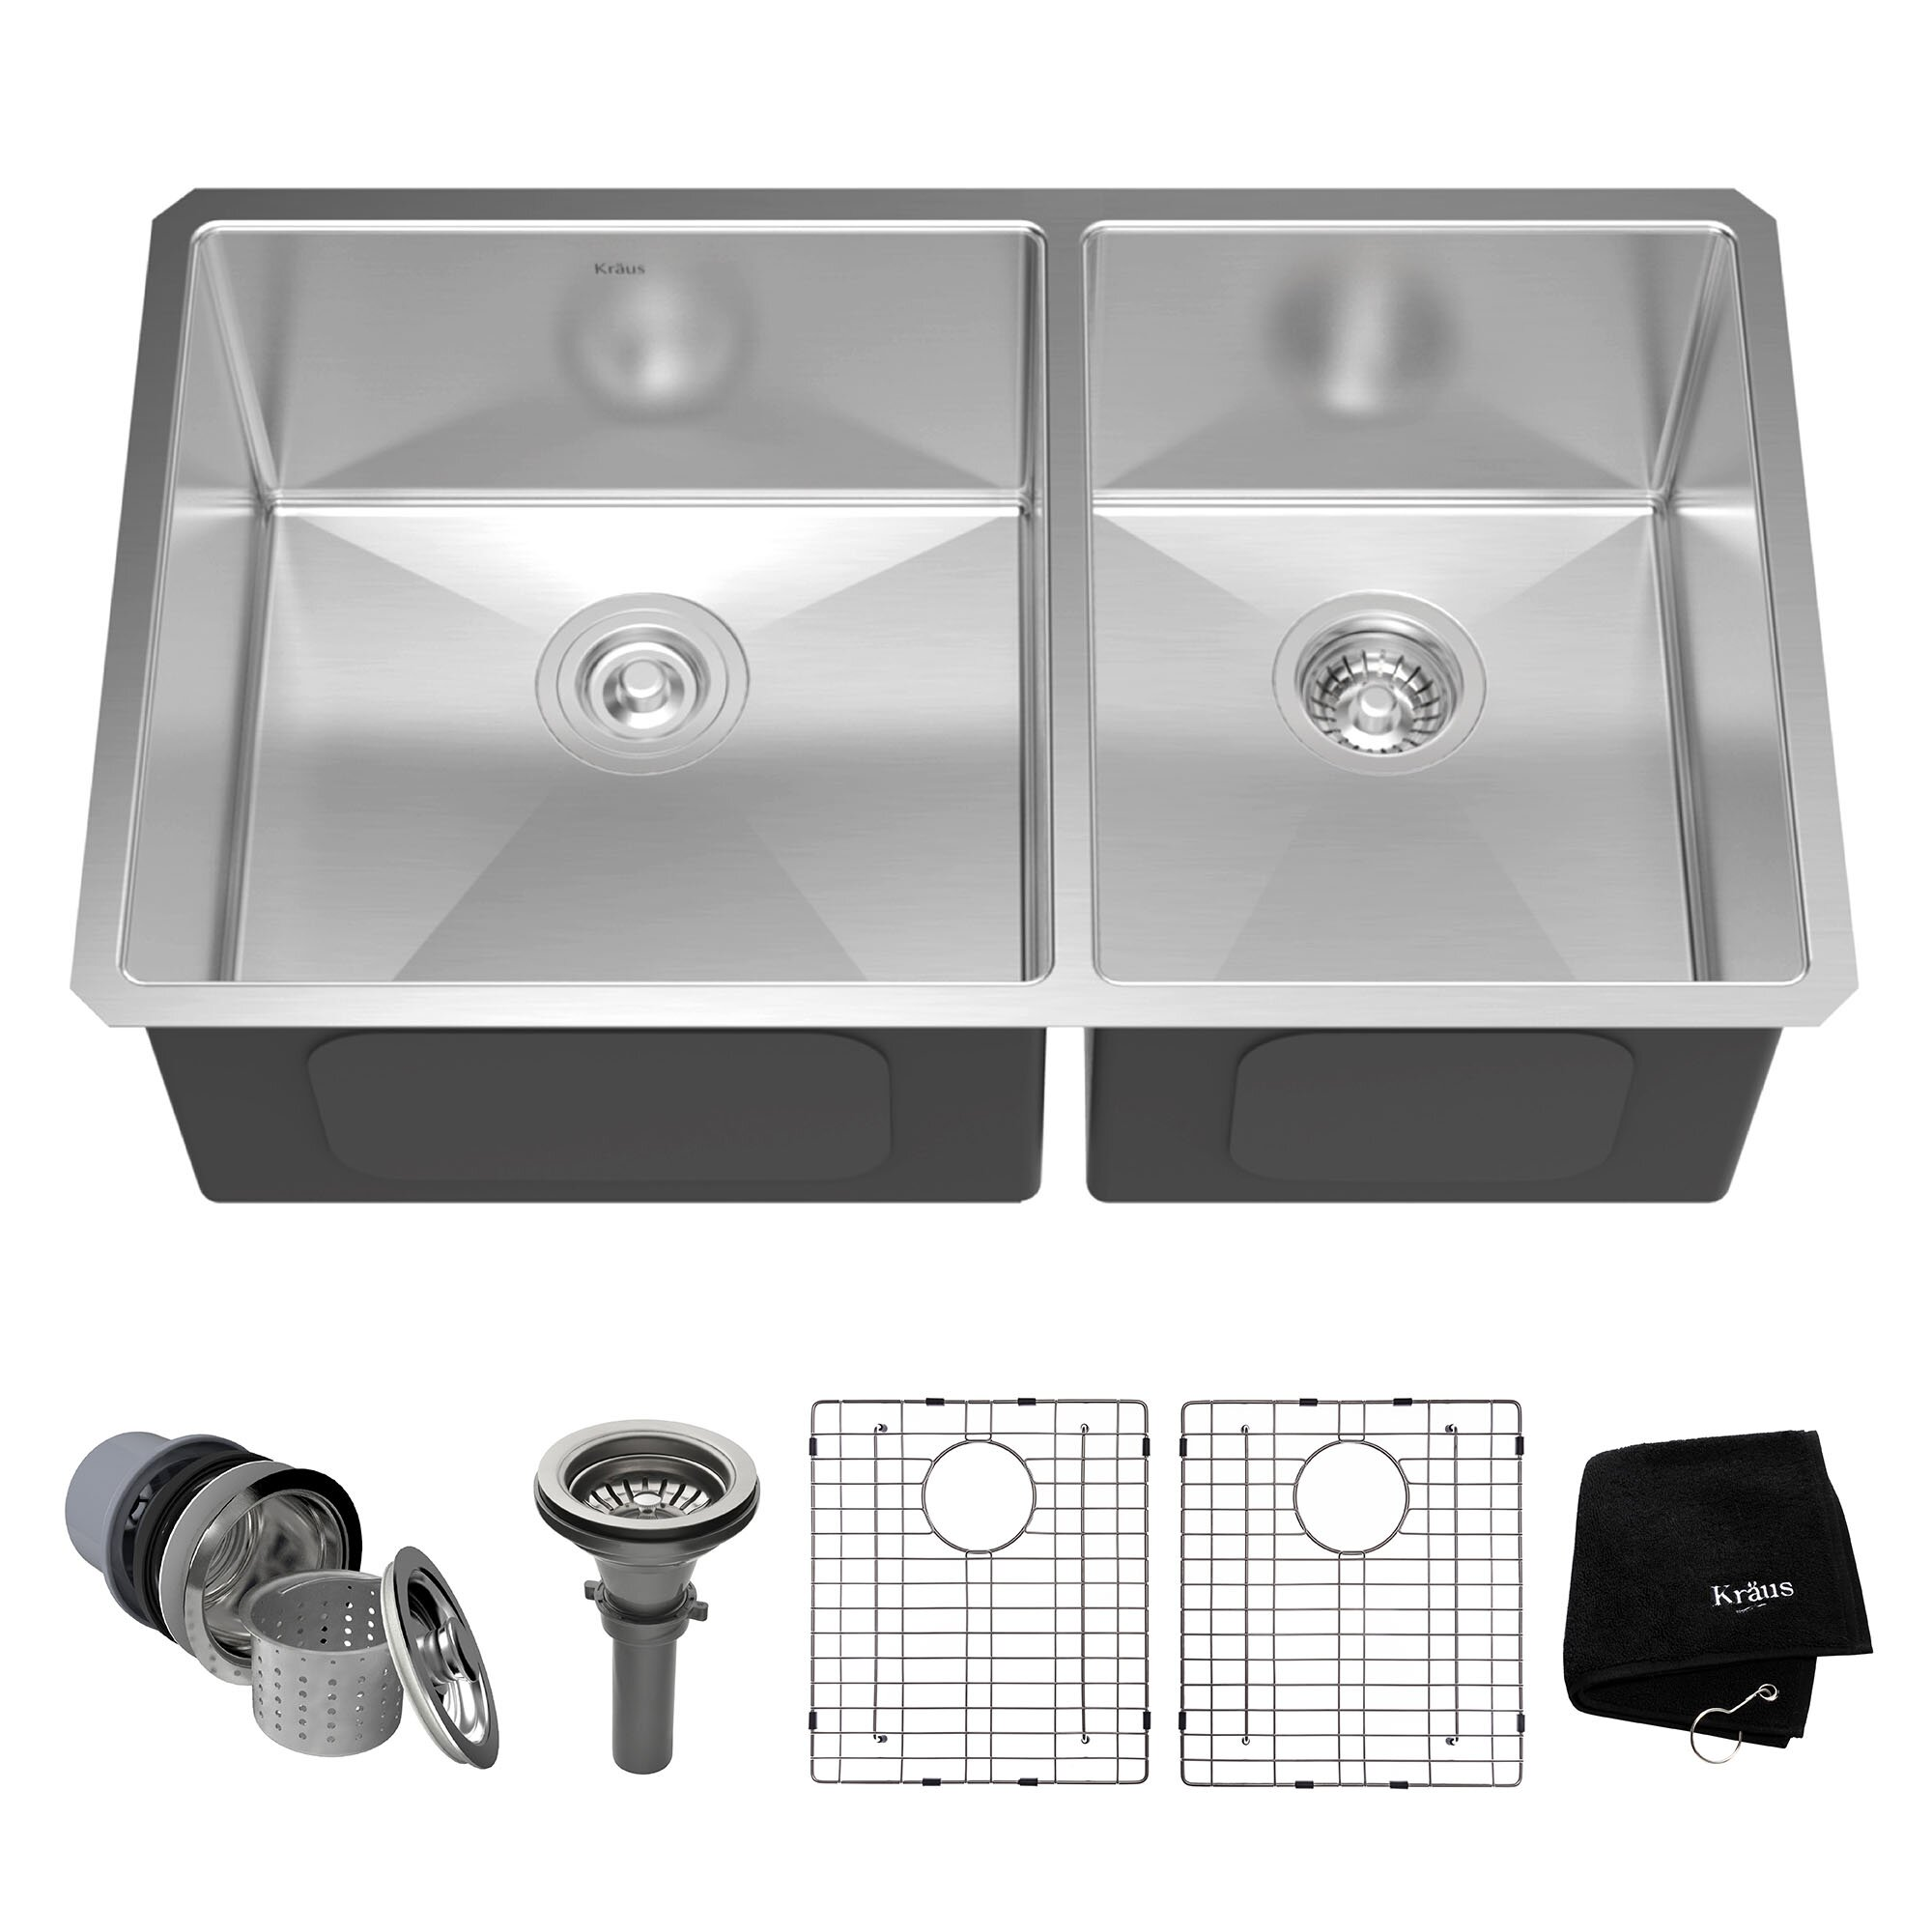 3275 x 19 double basin undermount kitchen sink with noisedefend soundproofing - Kitchen Sink Double